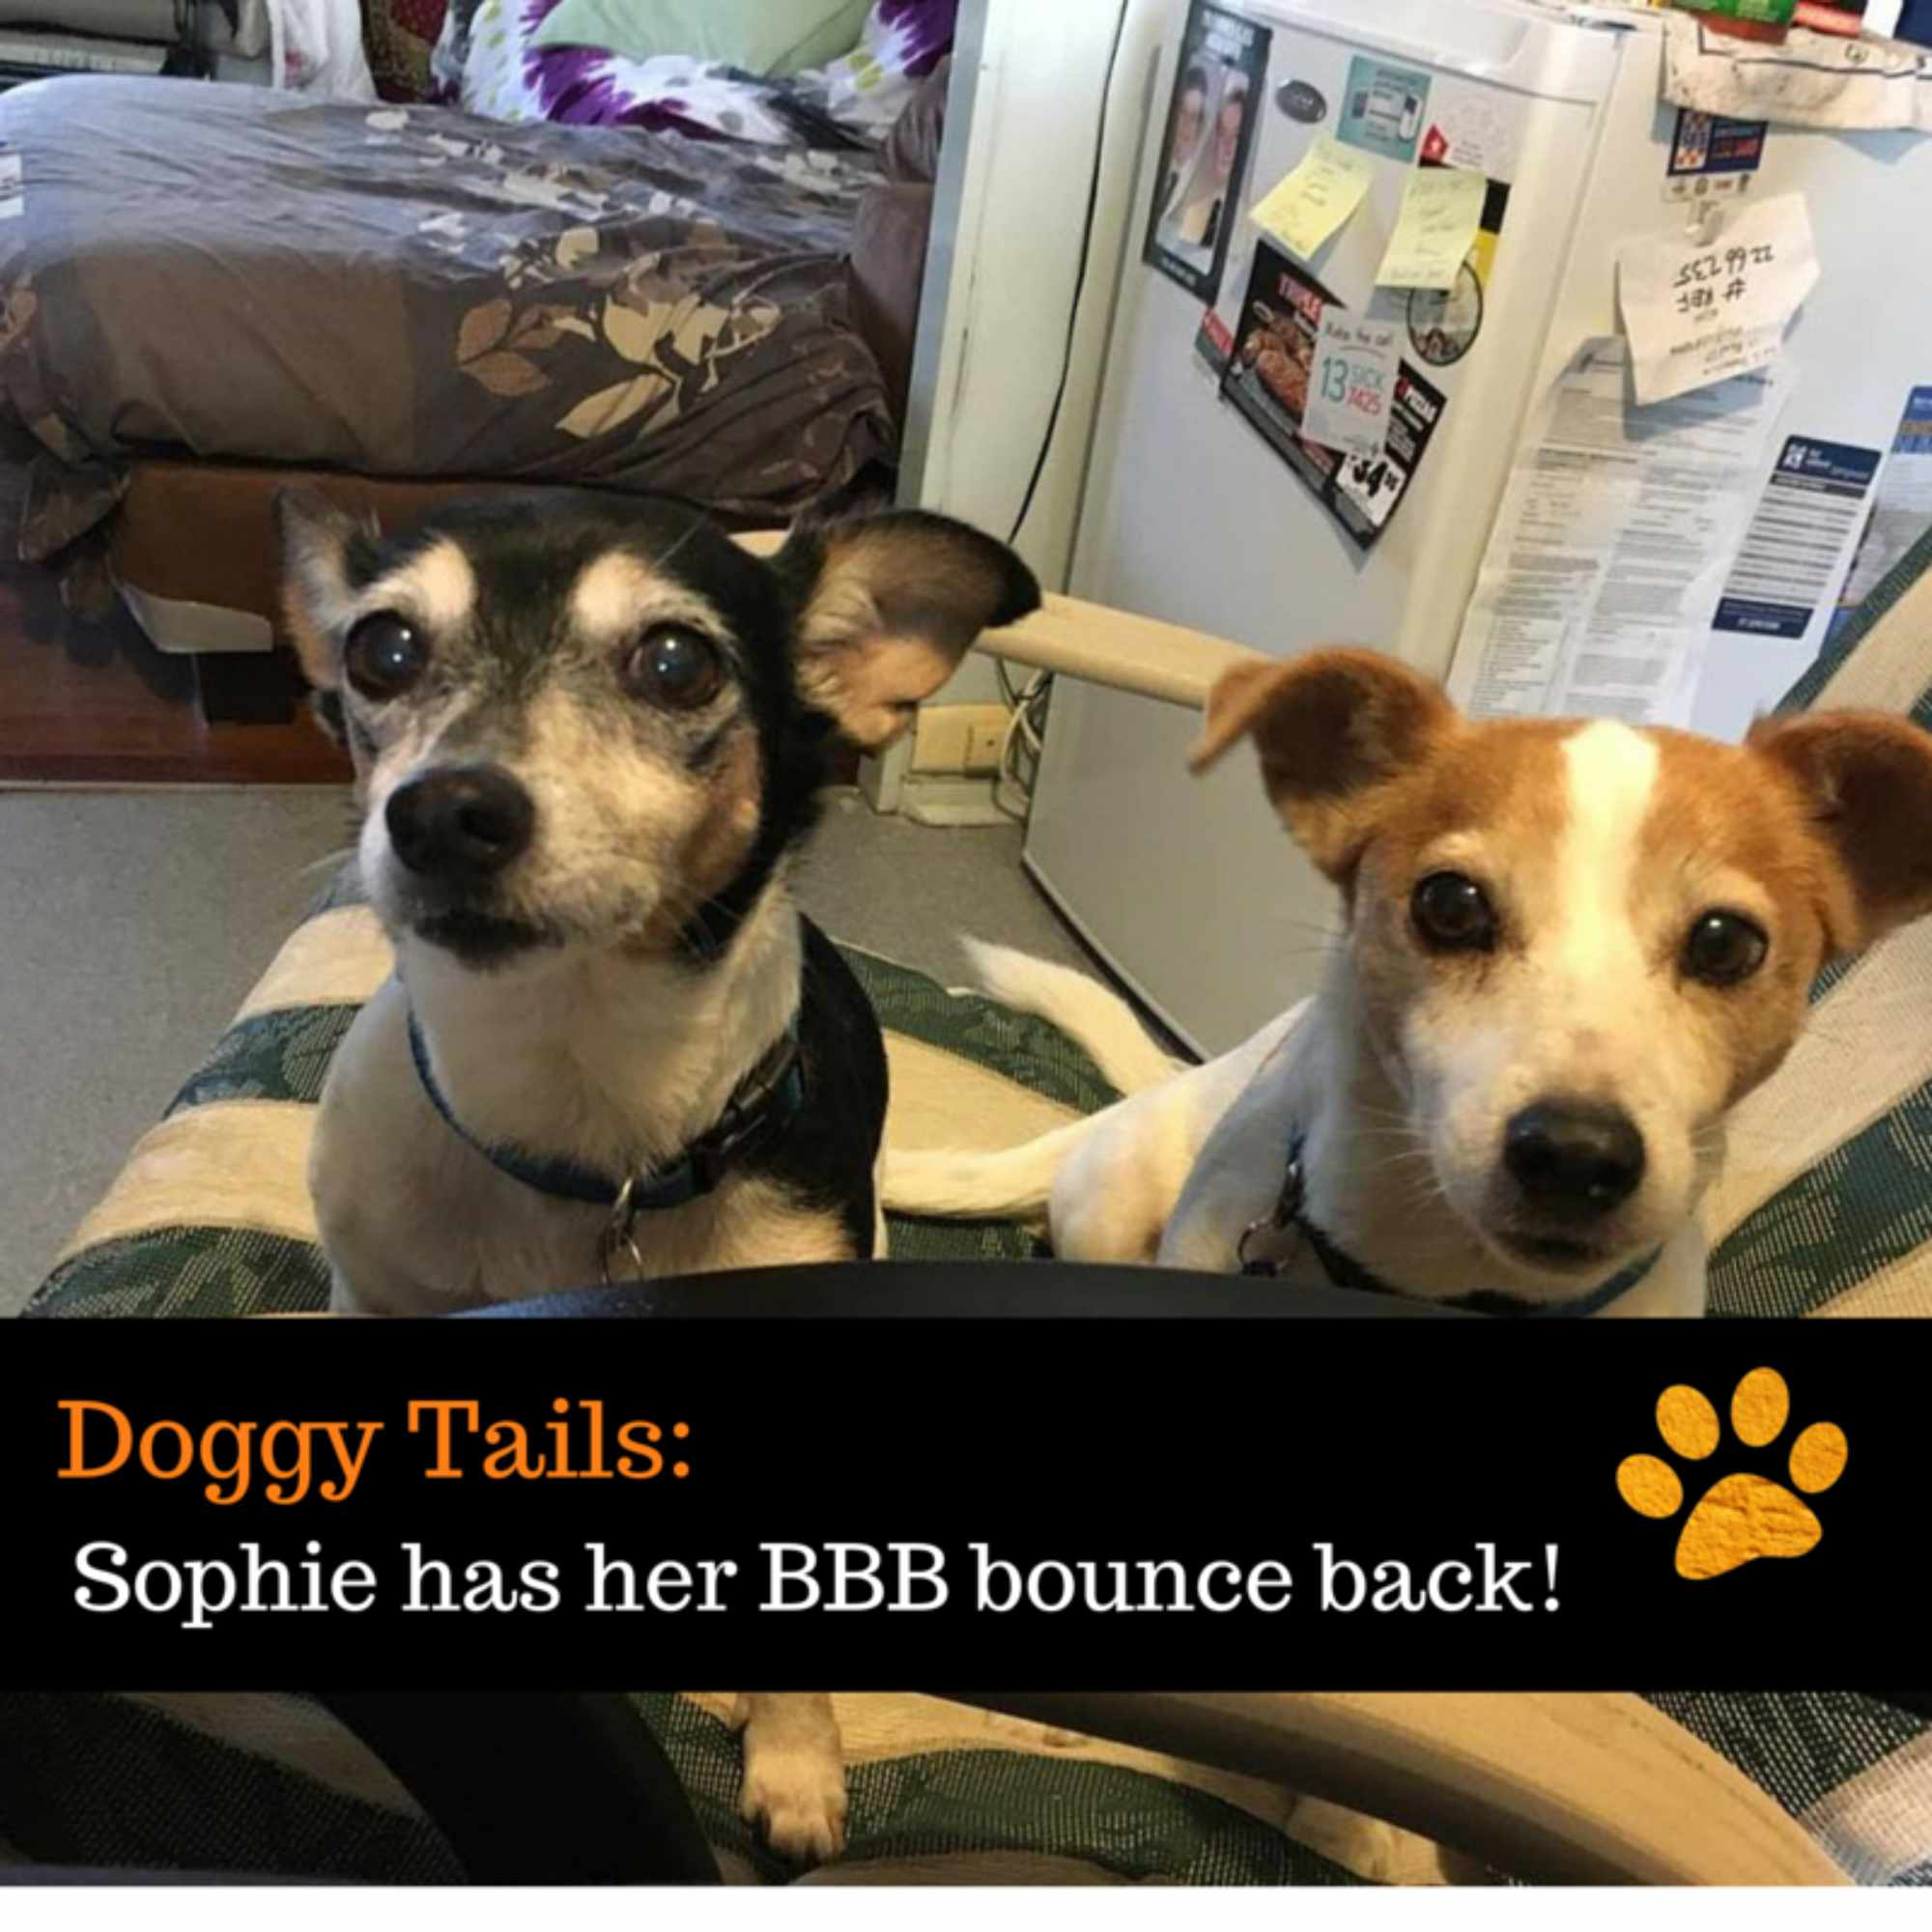 Sophie has her BBB bounce back!